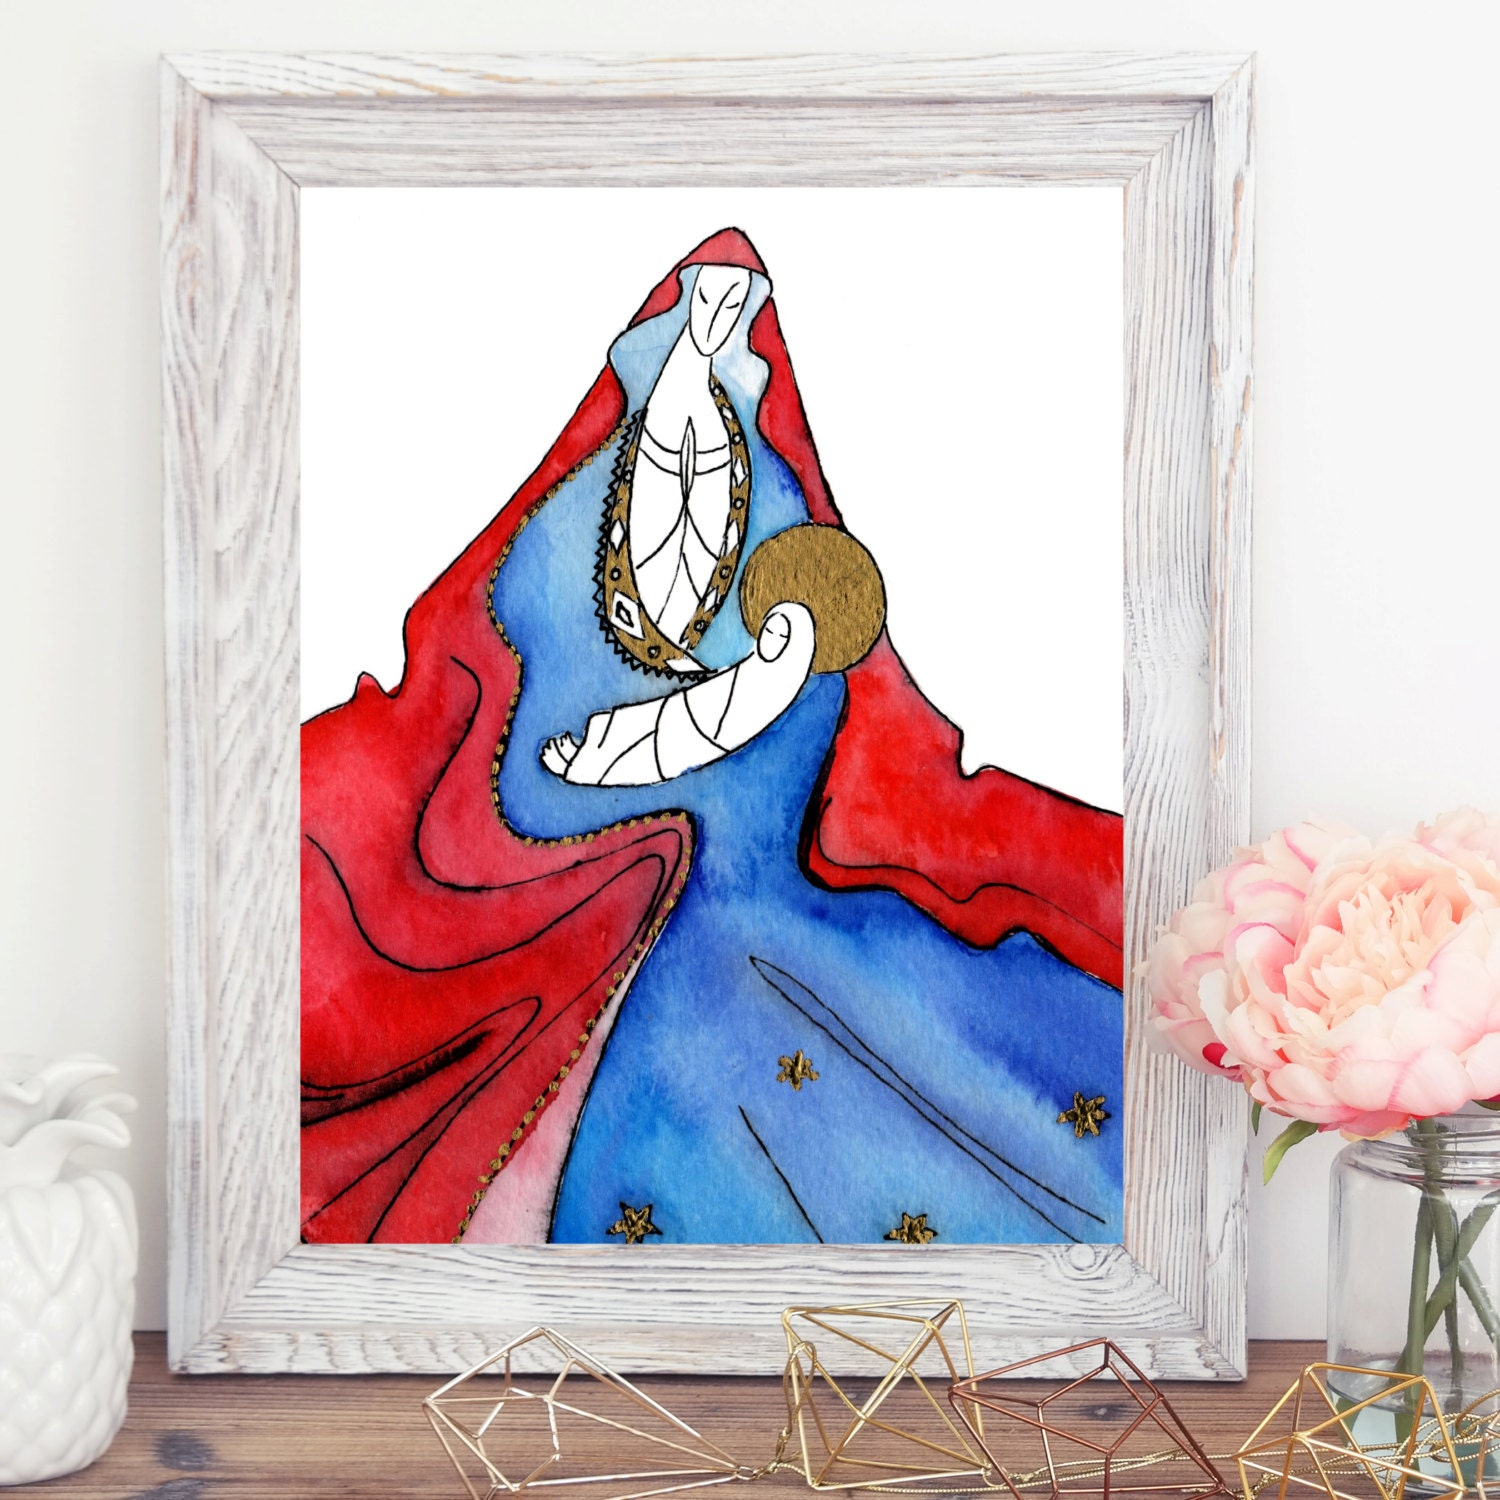 Home Interior Jesus: Jesus Art Home Decor Birthday Gift Christmas Gift For